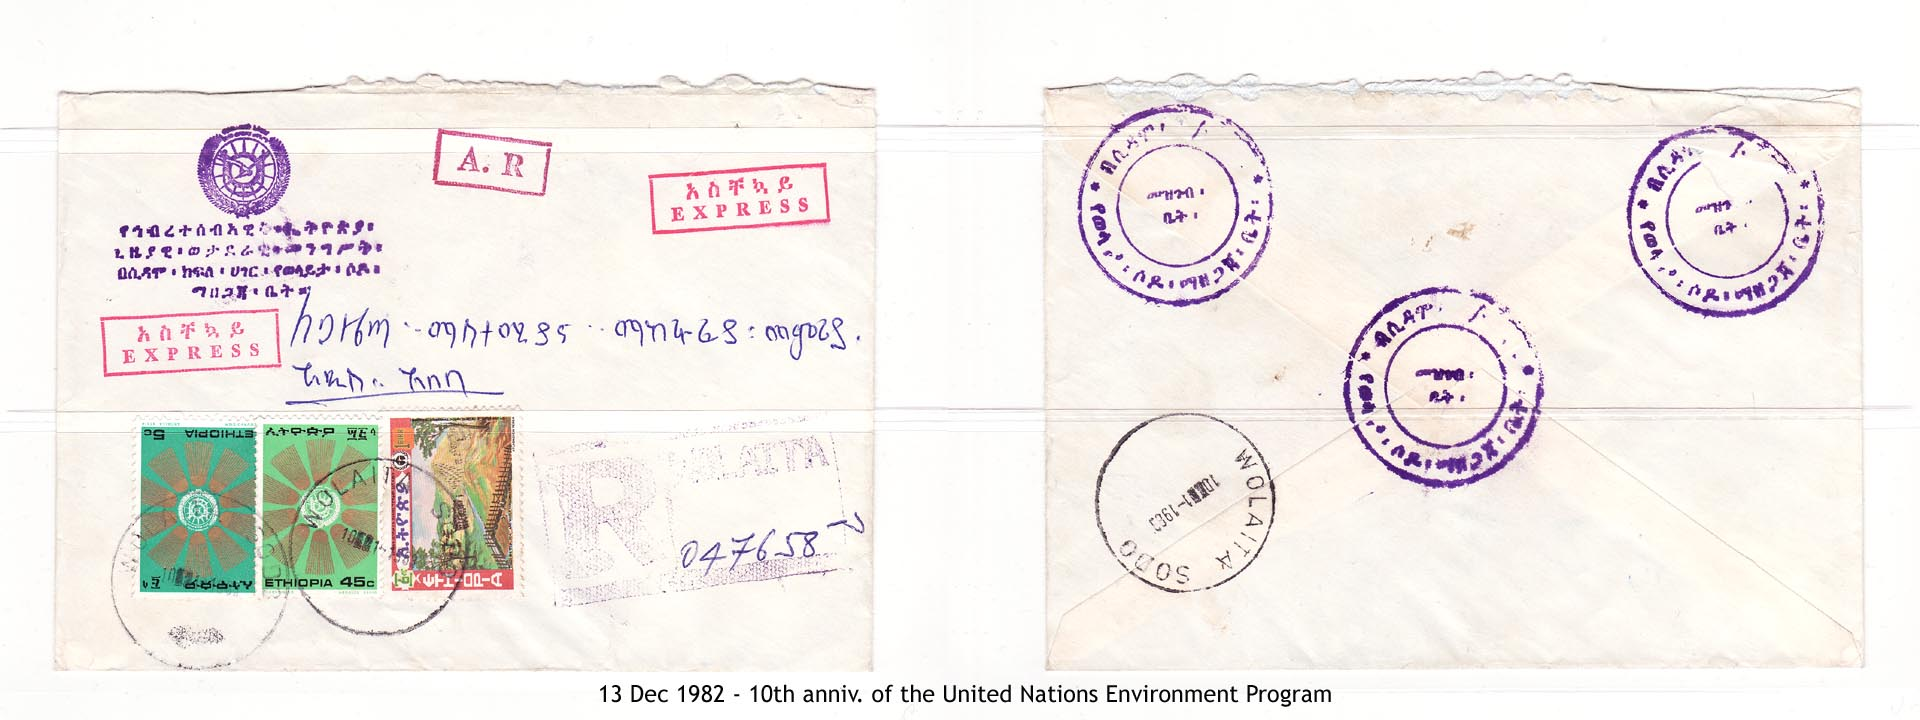 19821213 - 10th anniv. of the United Nations Environment Program